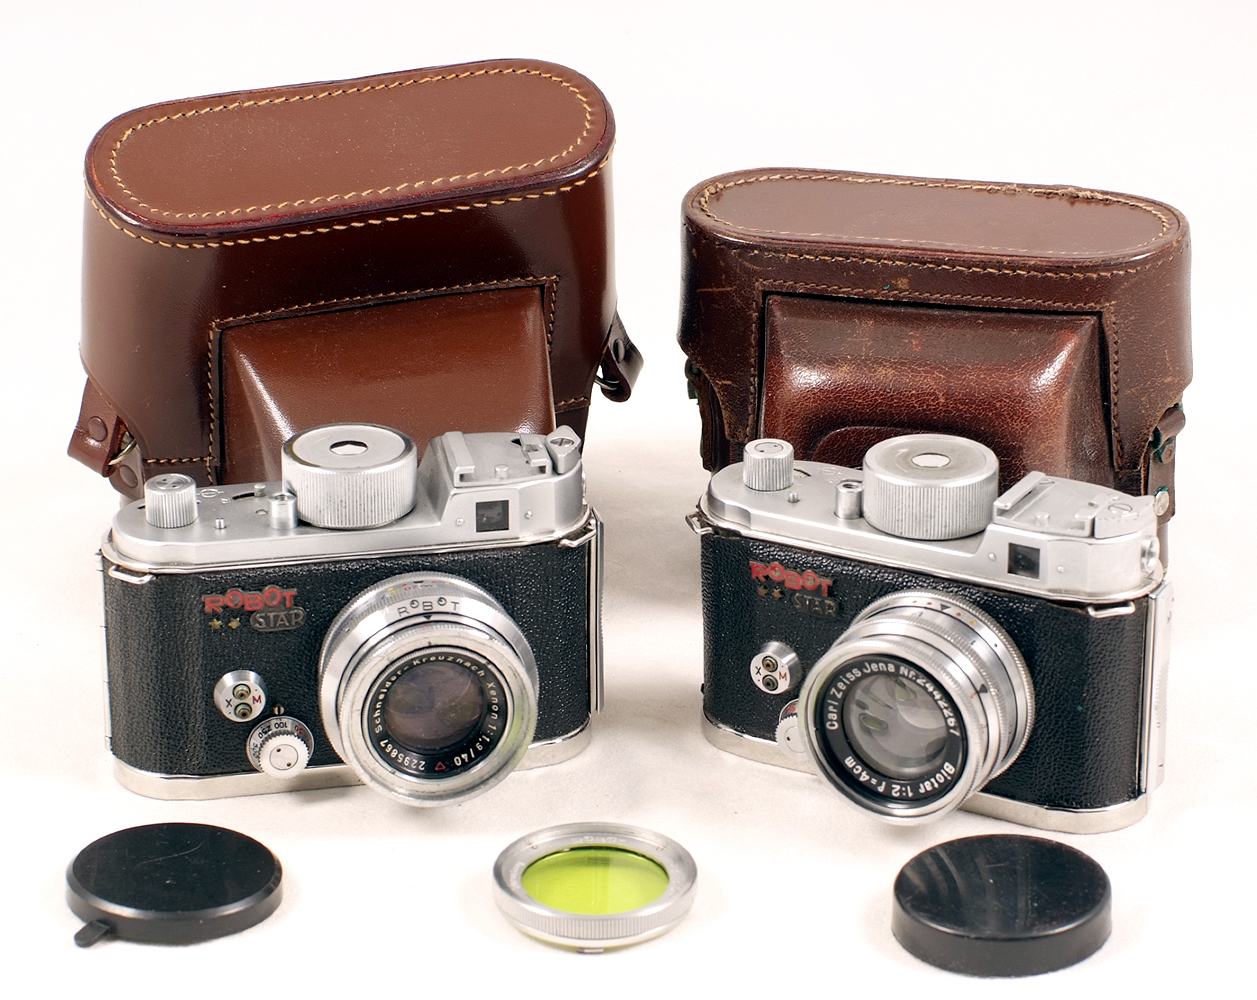 Lot 18 - A Pair of Uncommon Robot Star Clockwork Cameras. #D108536 with Xenon 40mm f1.9 lens.